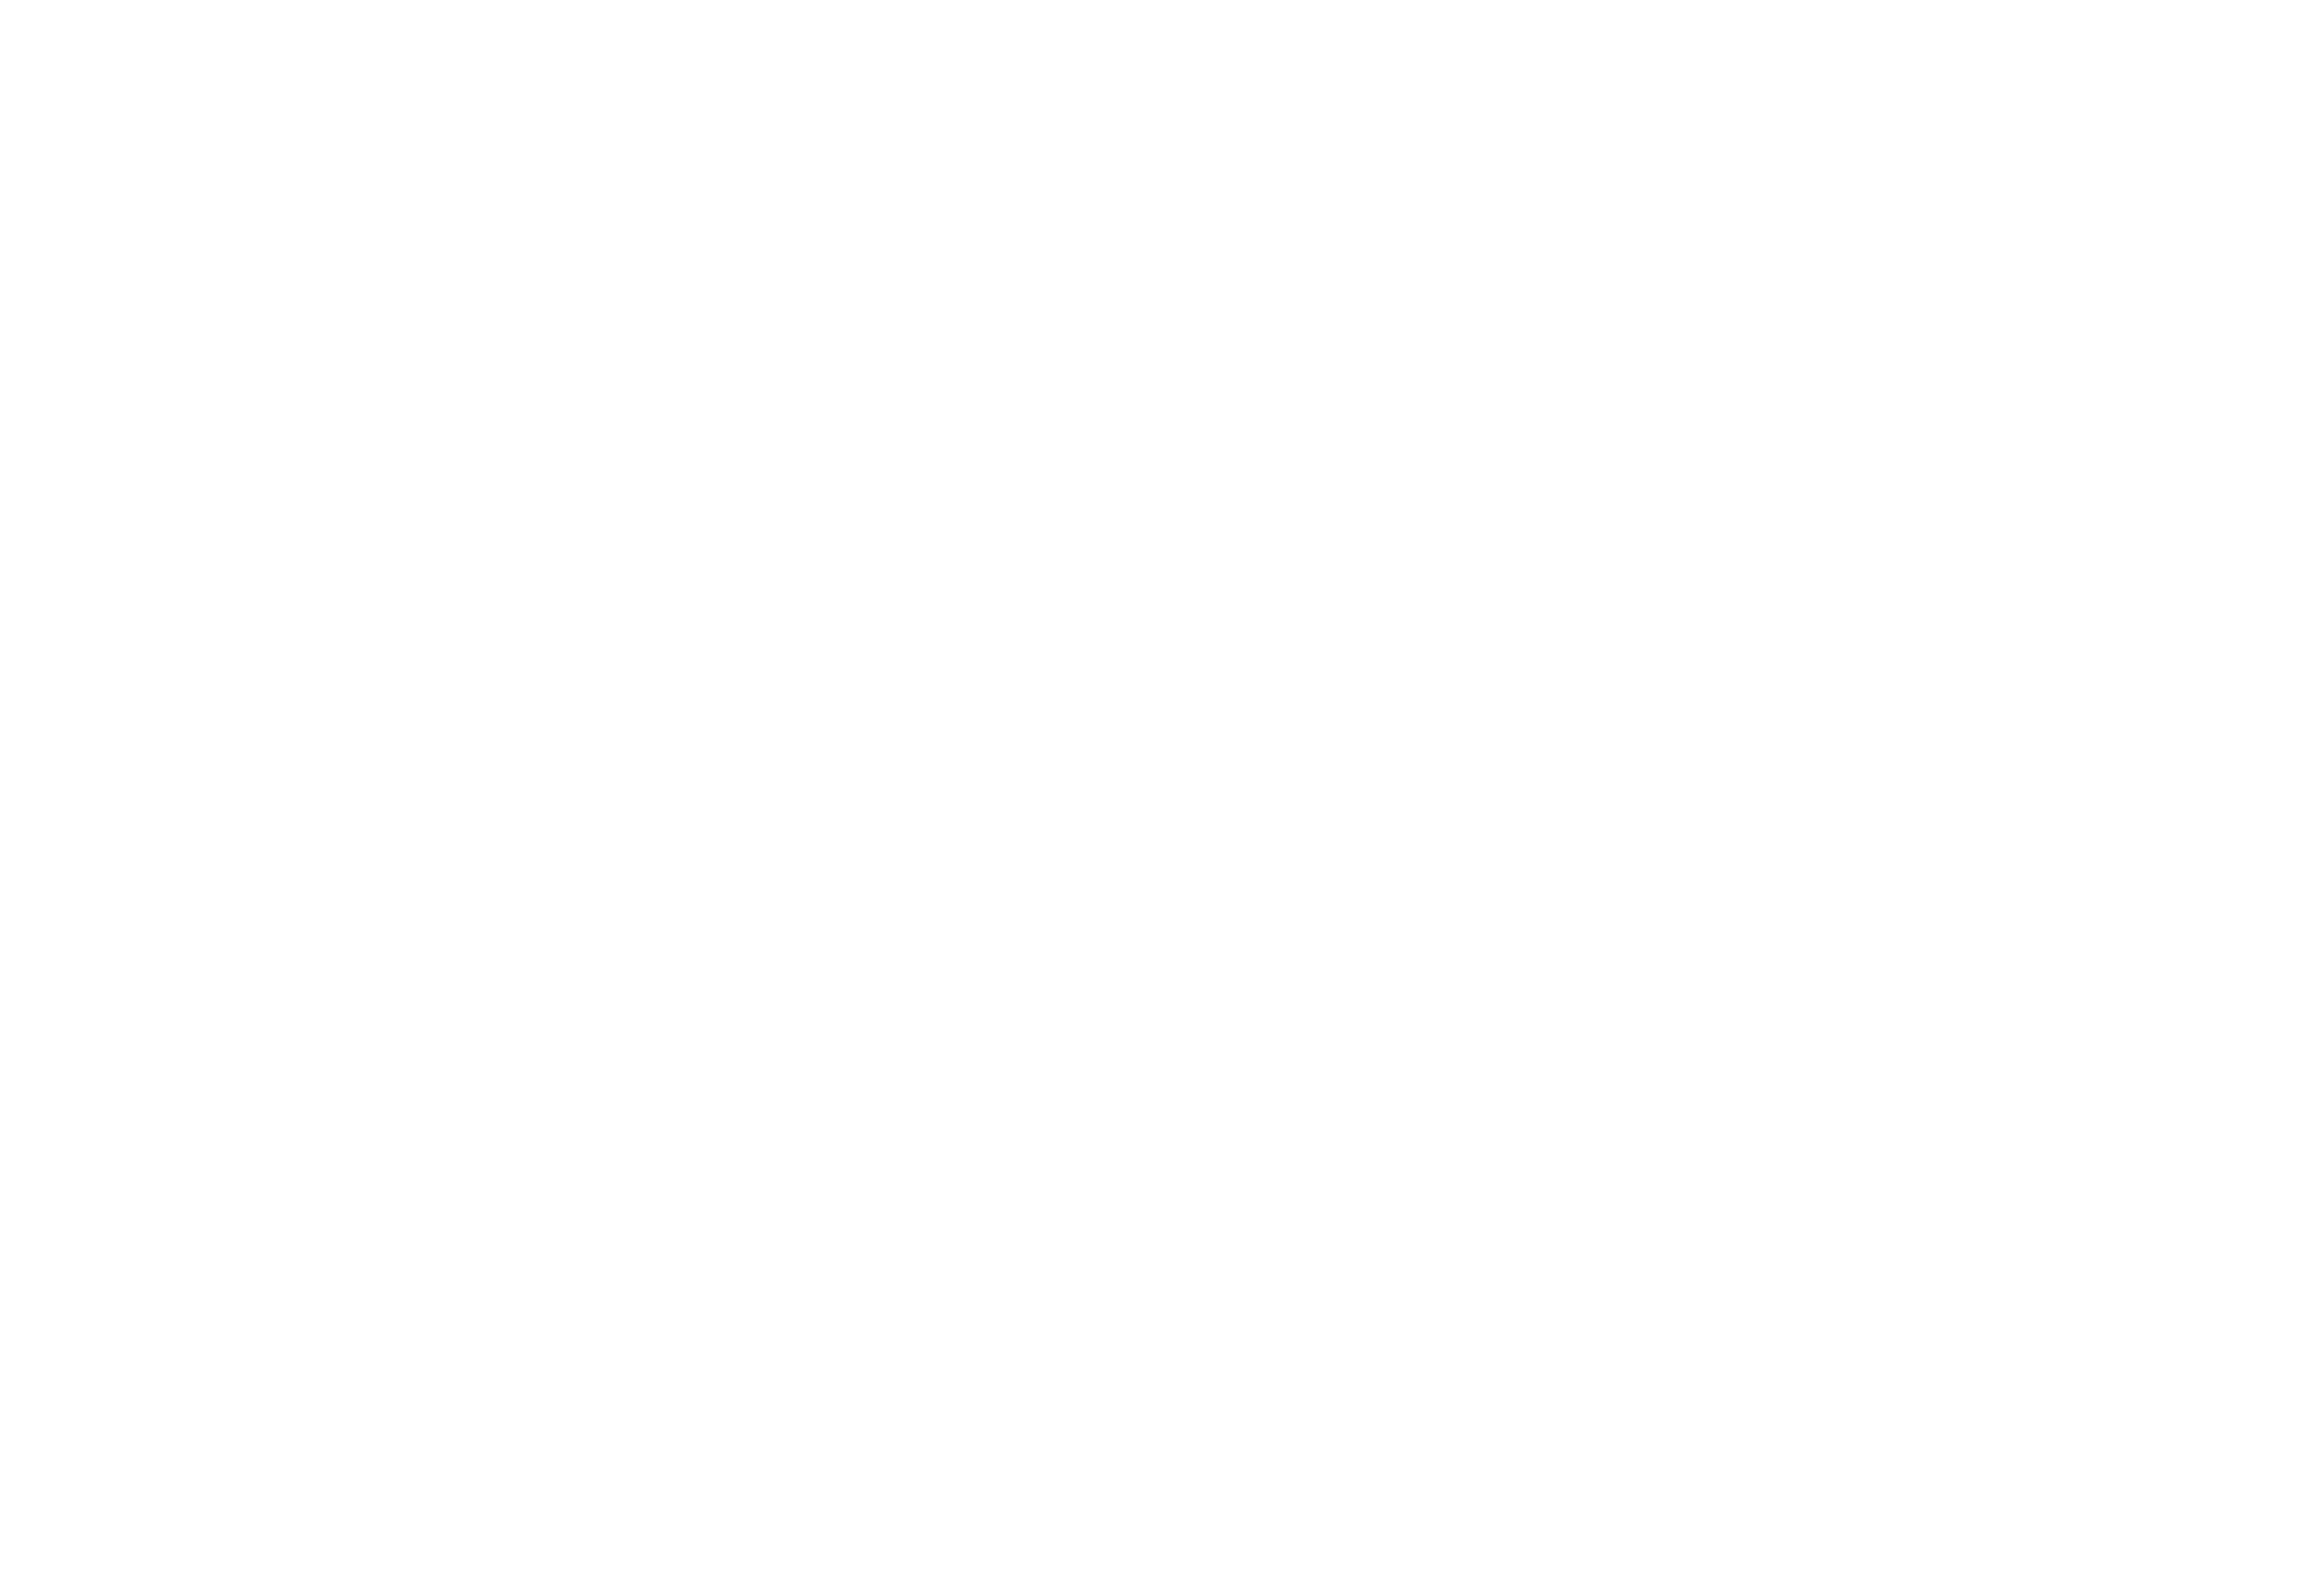 Chugach Technical Solutions